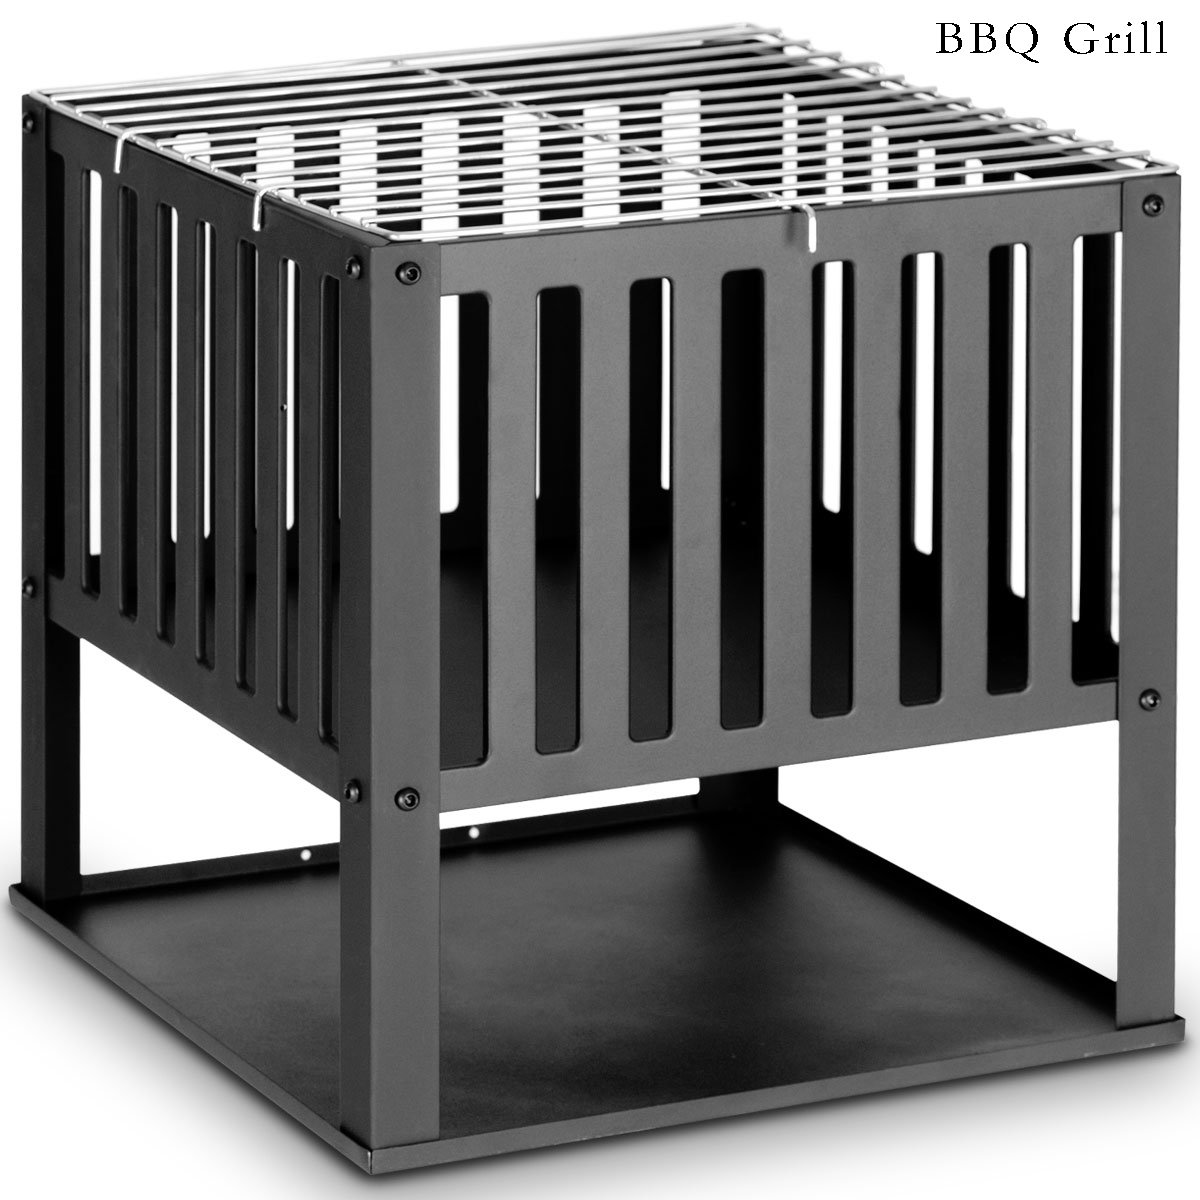 Casart Black Square Grill BBQ Charcoal Barbecue Cook Portable Steel Camping Garden Patio Outdoor